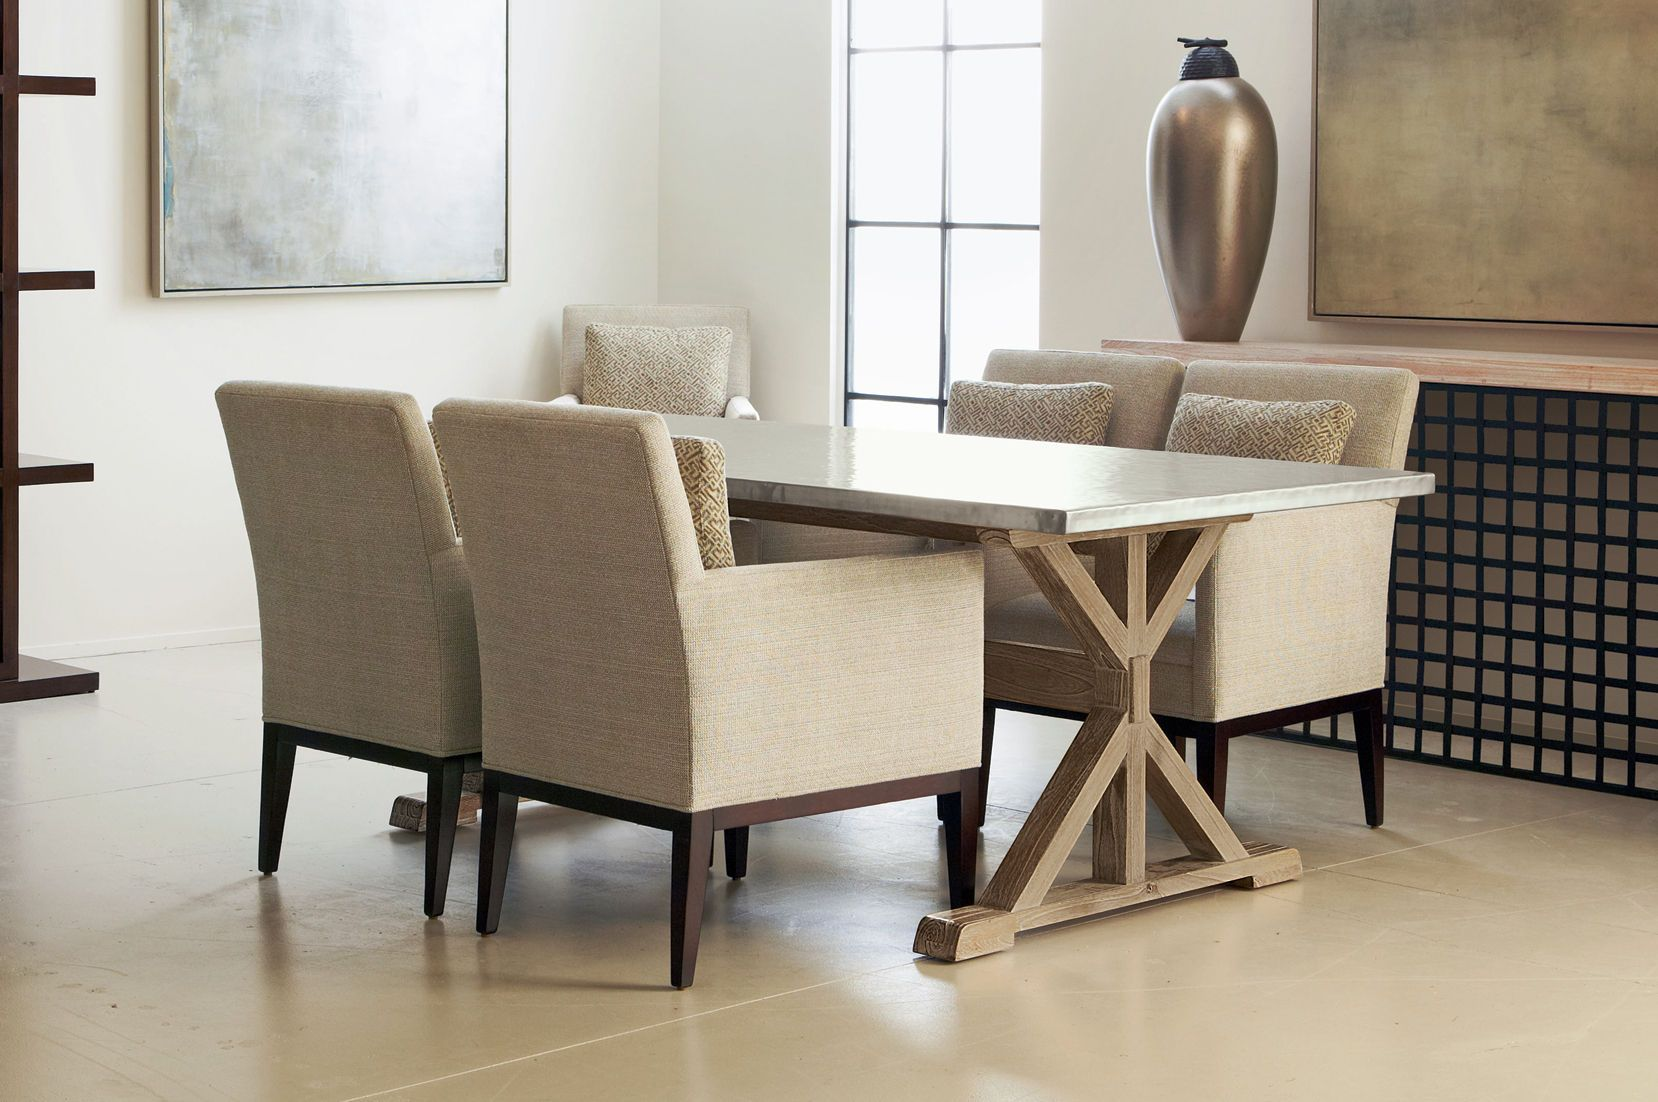 This beautiful dining room effortlessly combines wood legs and hammered metal surface with beautifully upholstered chairs.